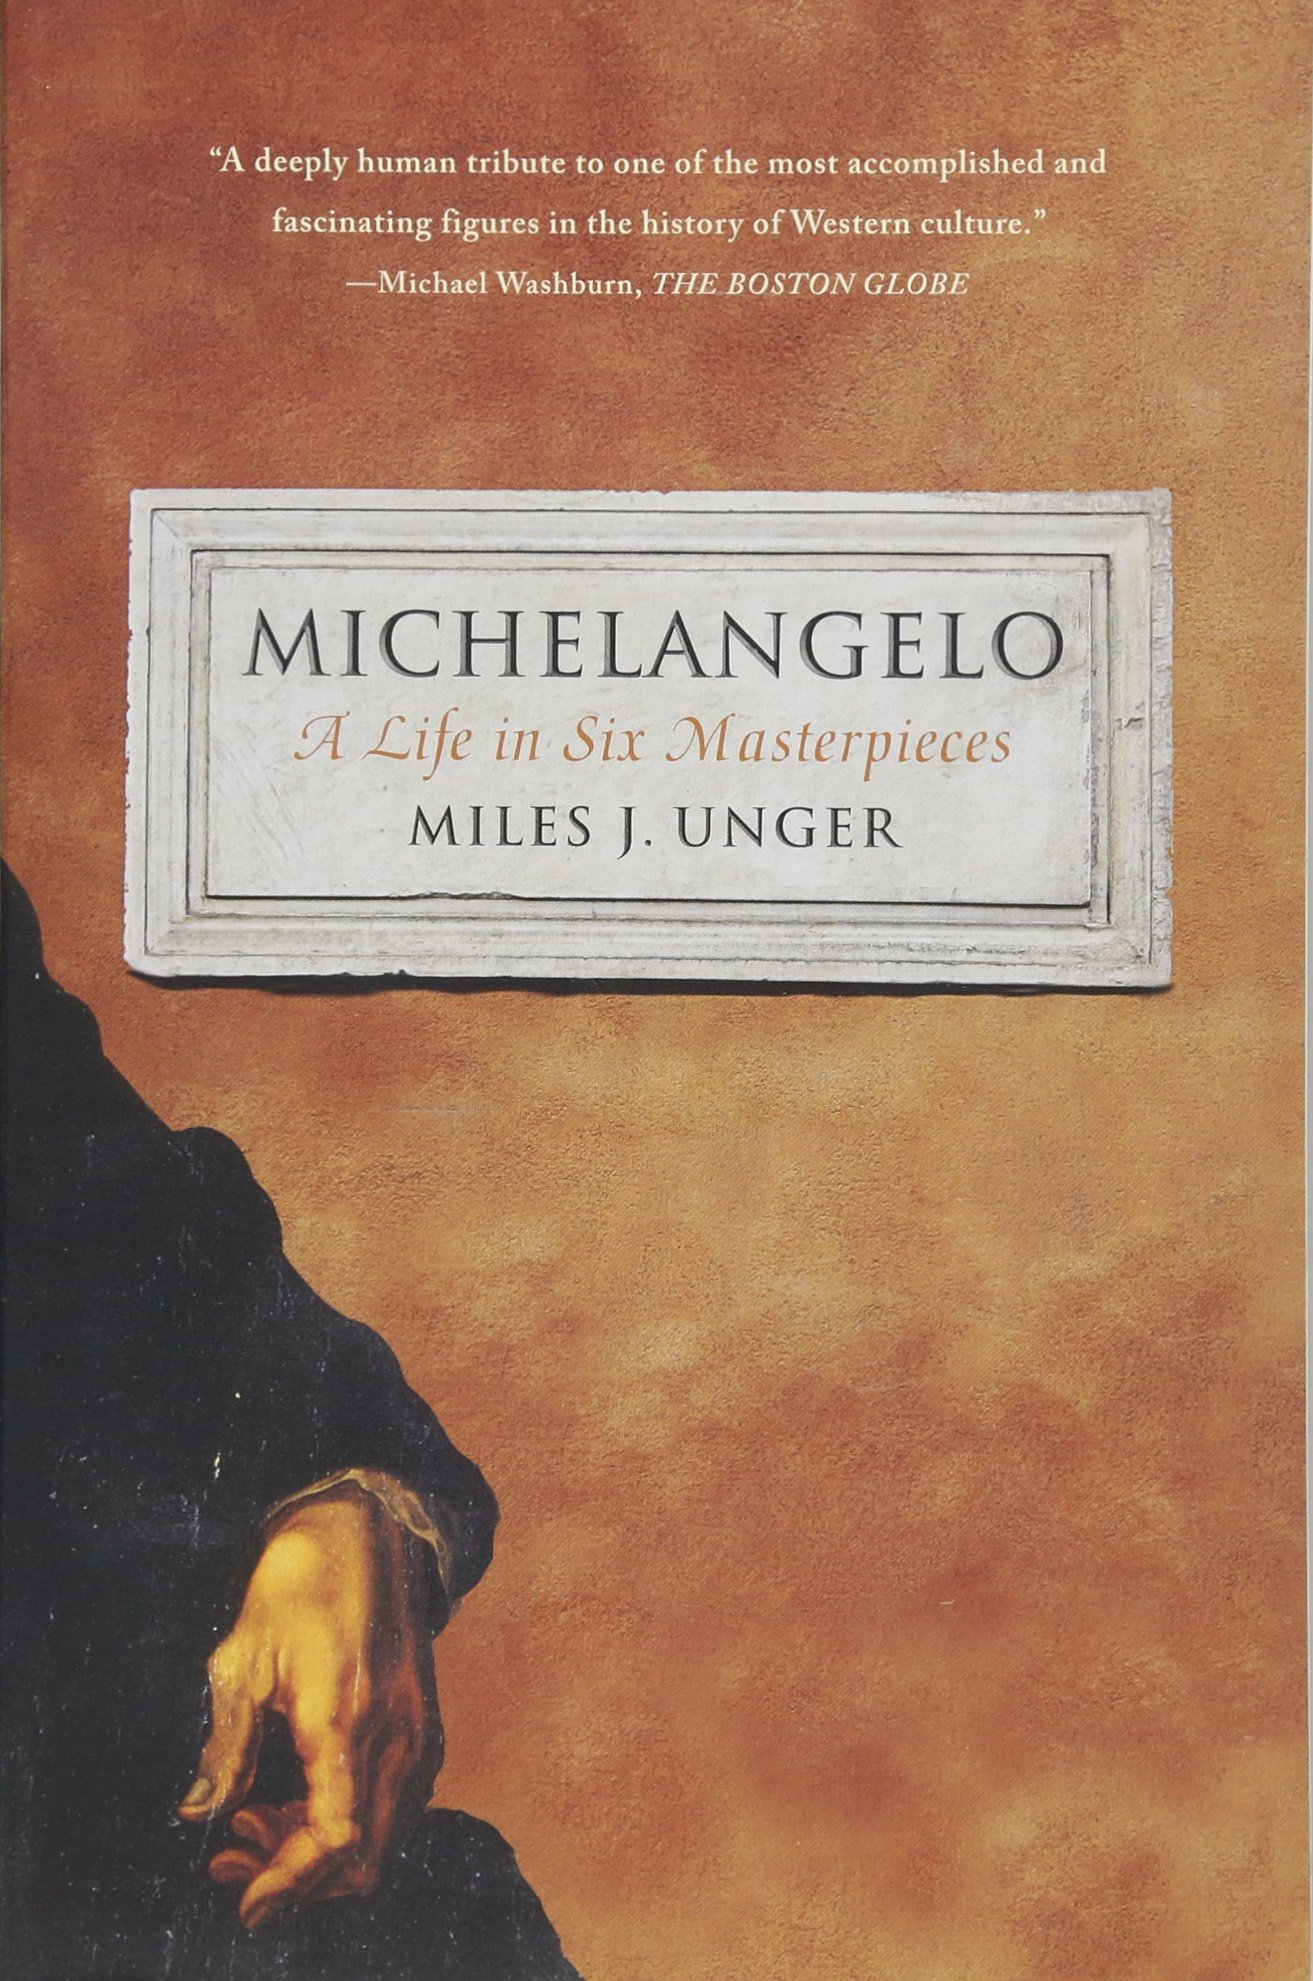 michelangelo as a sculptor paperback common